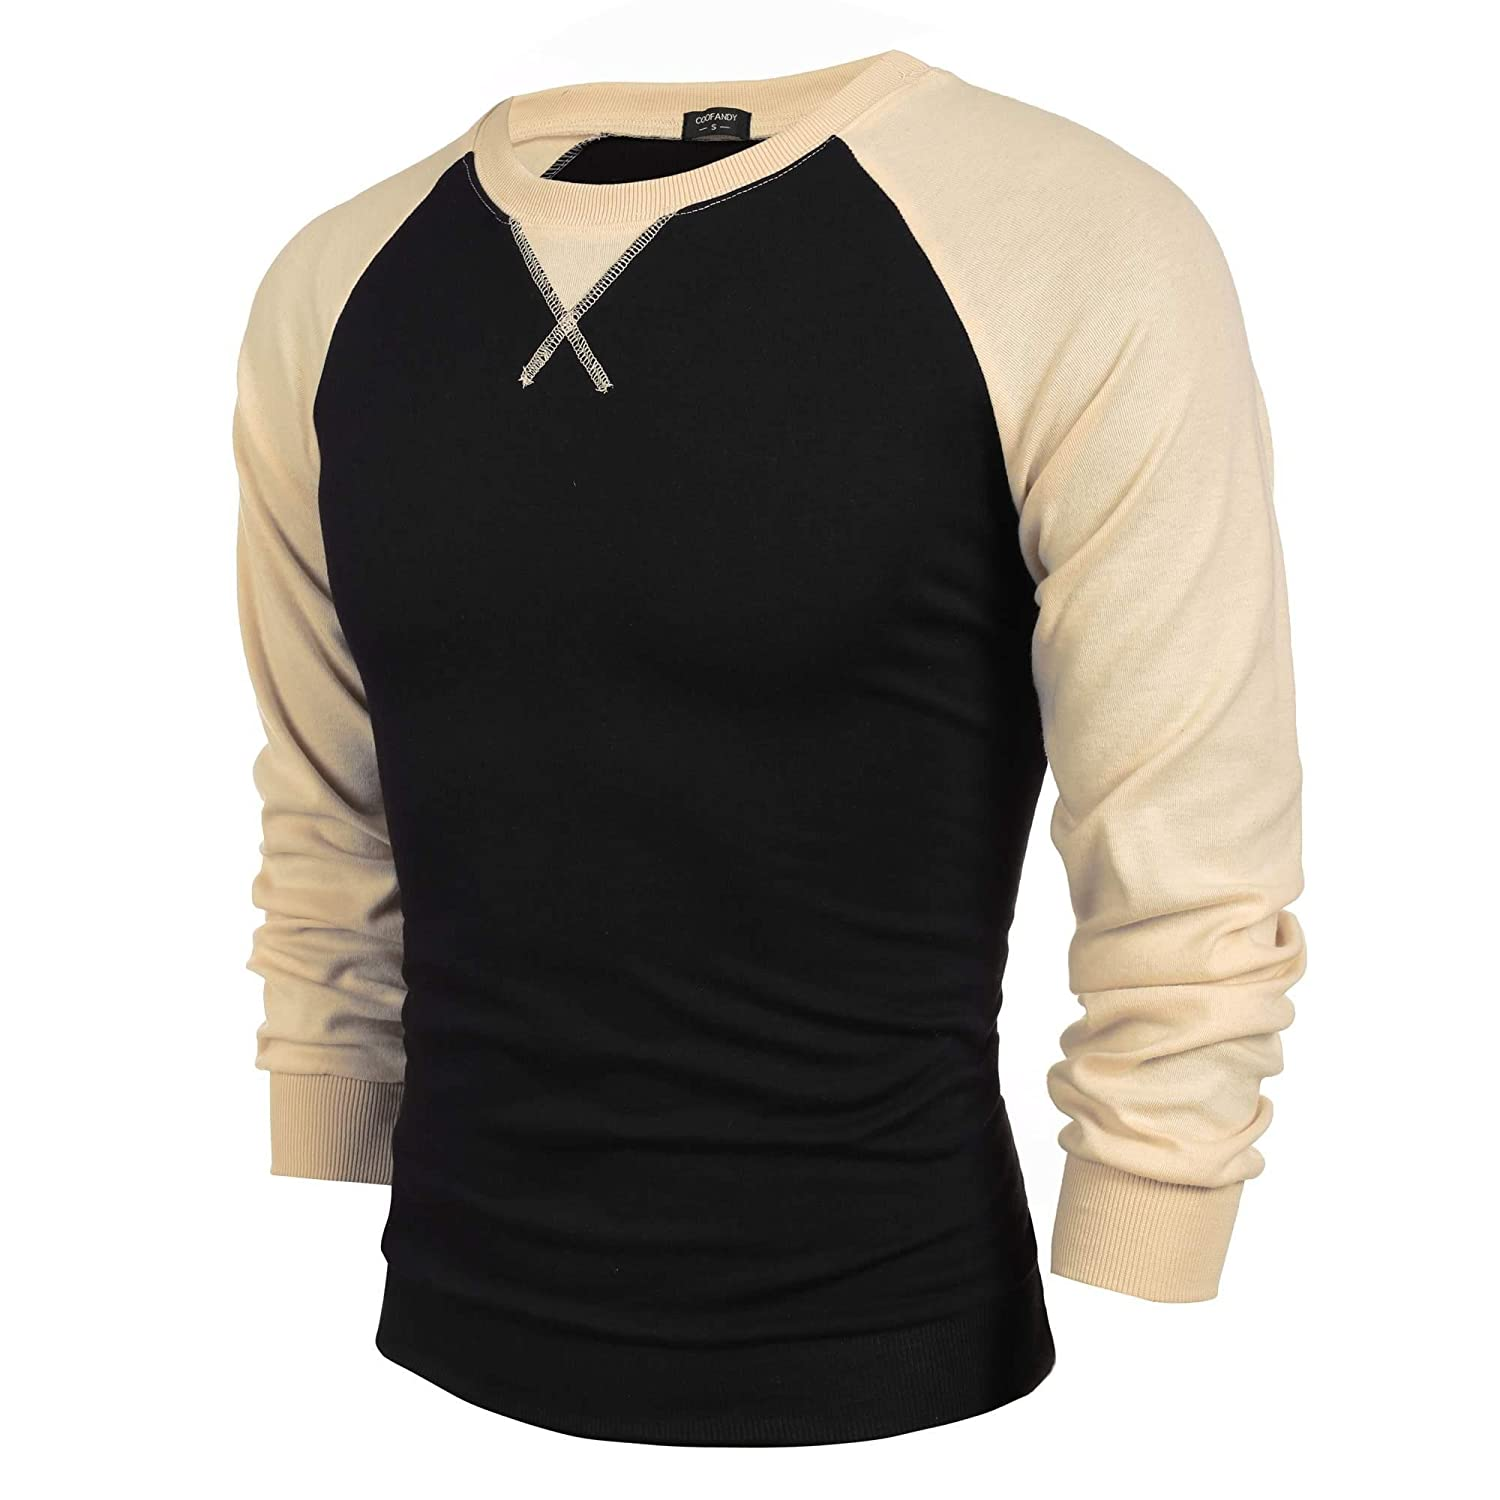 sholdnut Autumn Hoodies Leisure Coat Color Splicing Hoodie Casual Style Hoodies Long Sleeve Pullover T-Shirts